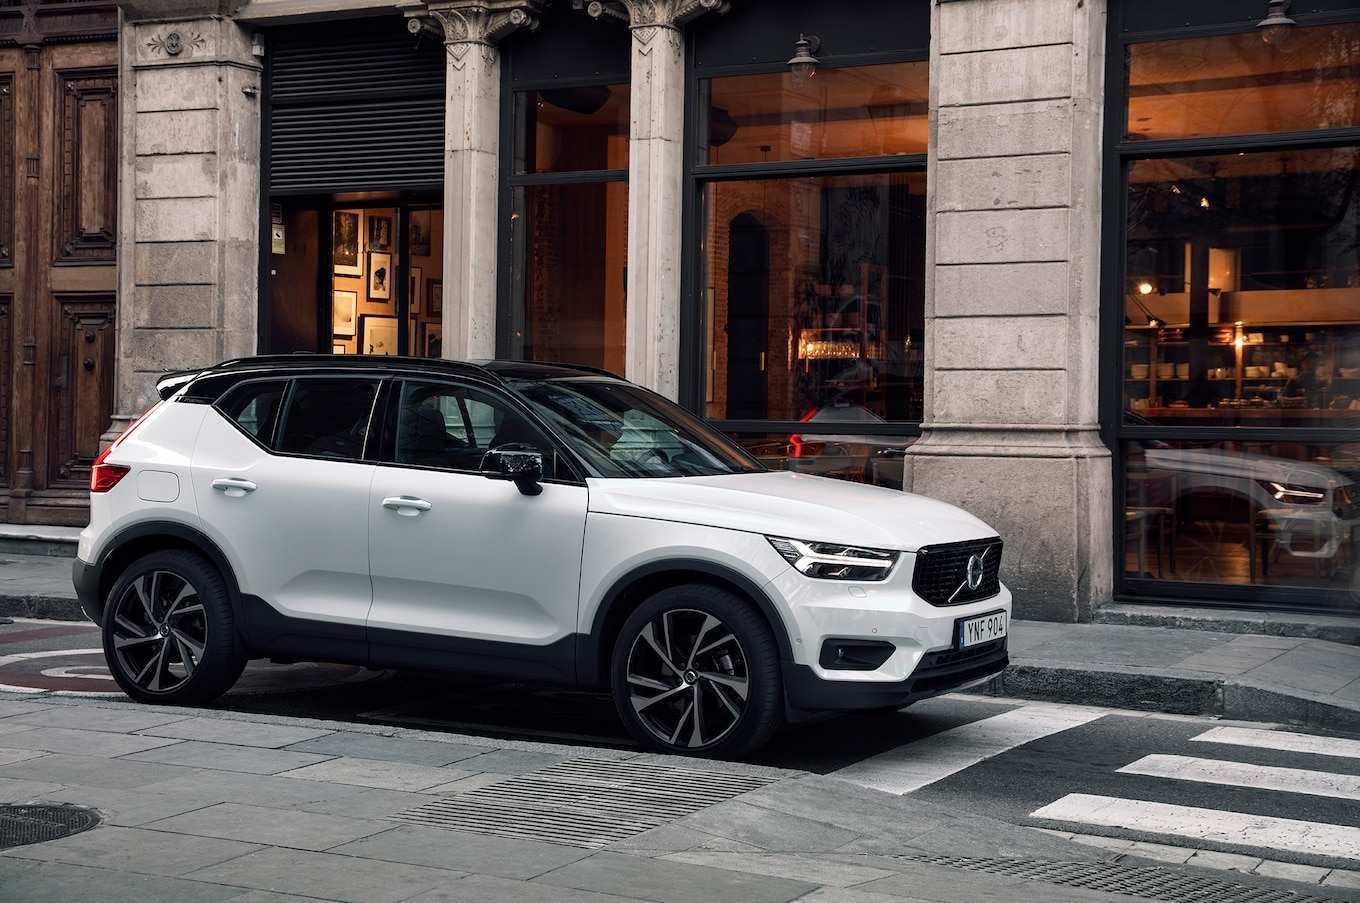 47 Best Review Volvo And 2019 Images for Volvo And 2019